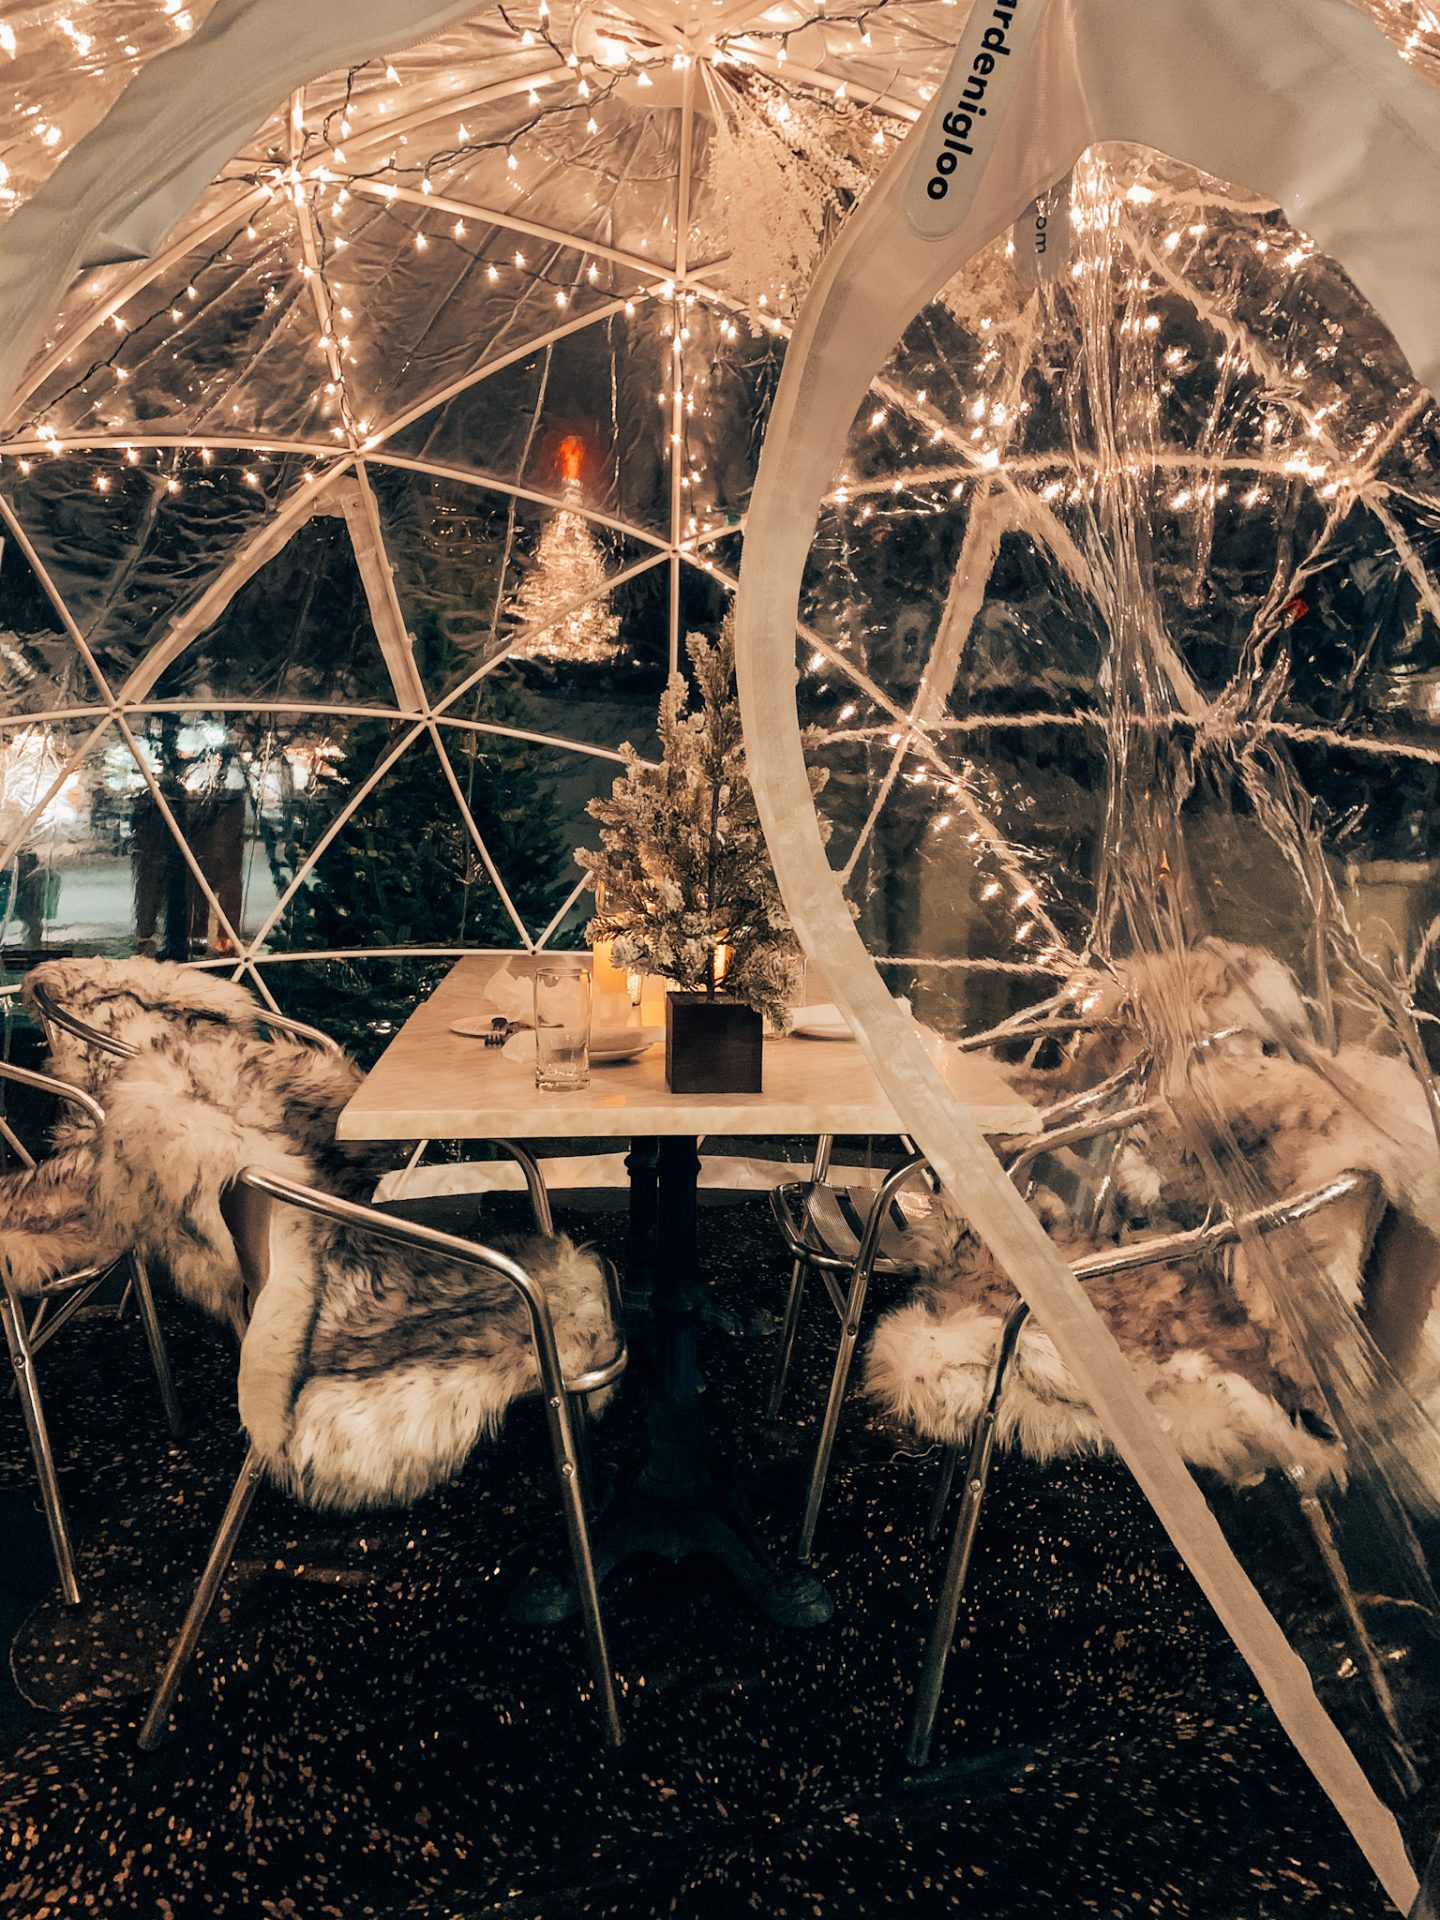 Igloo dining at the Kennebunkport Inn during the holidays in New England